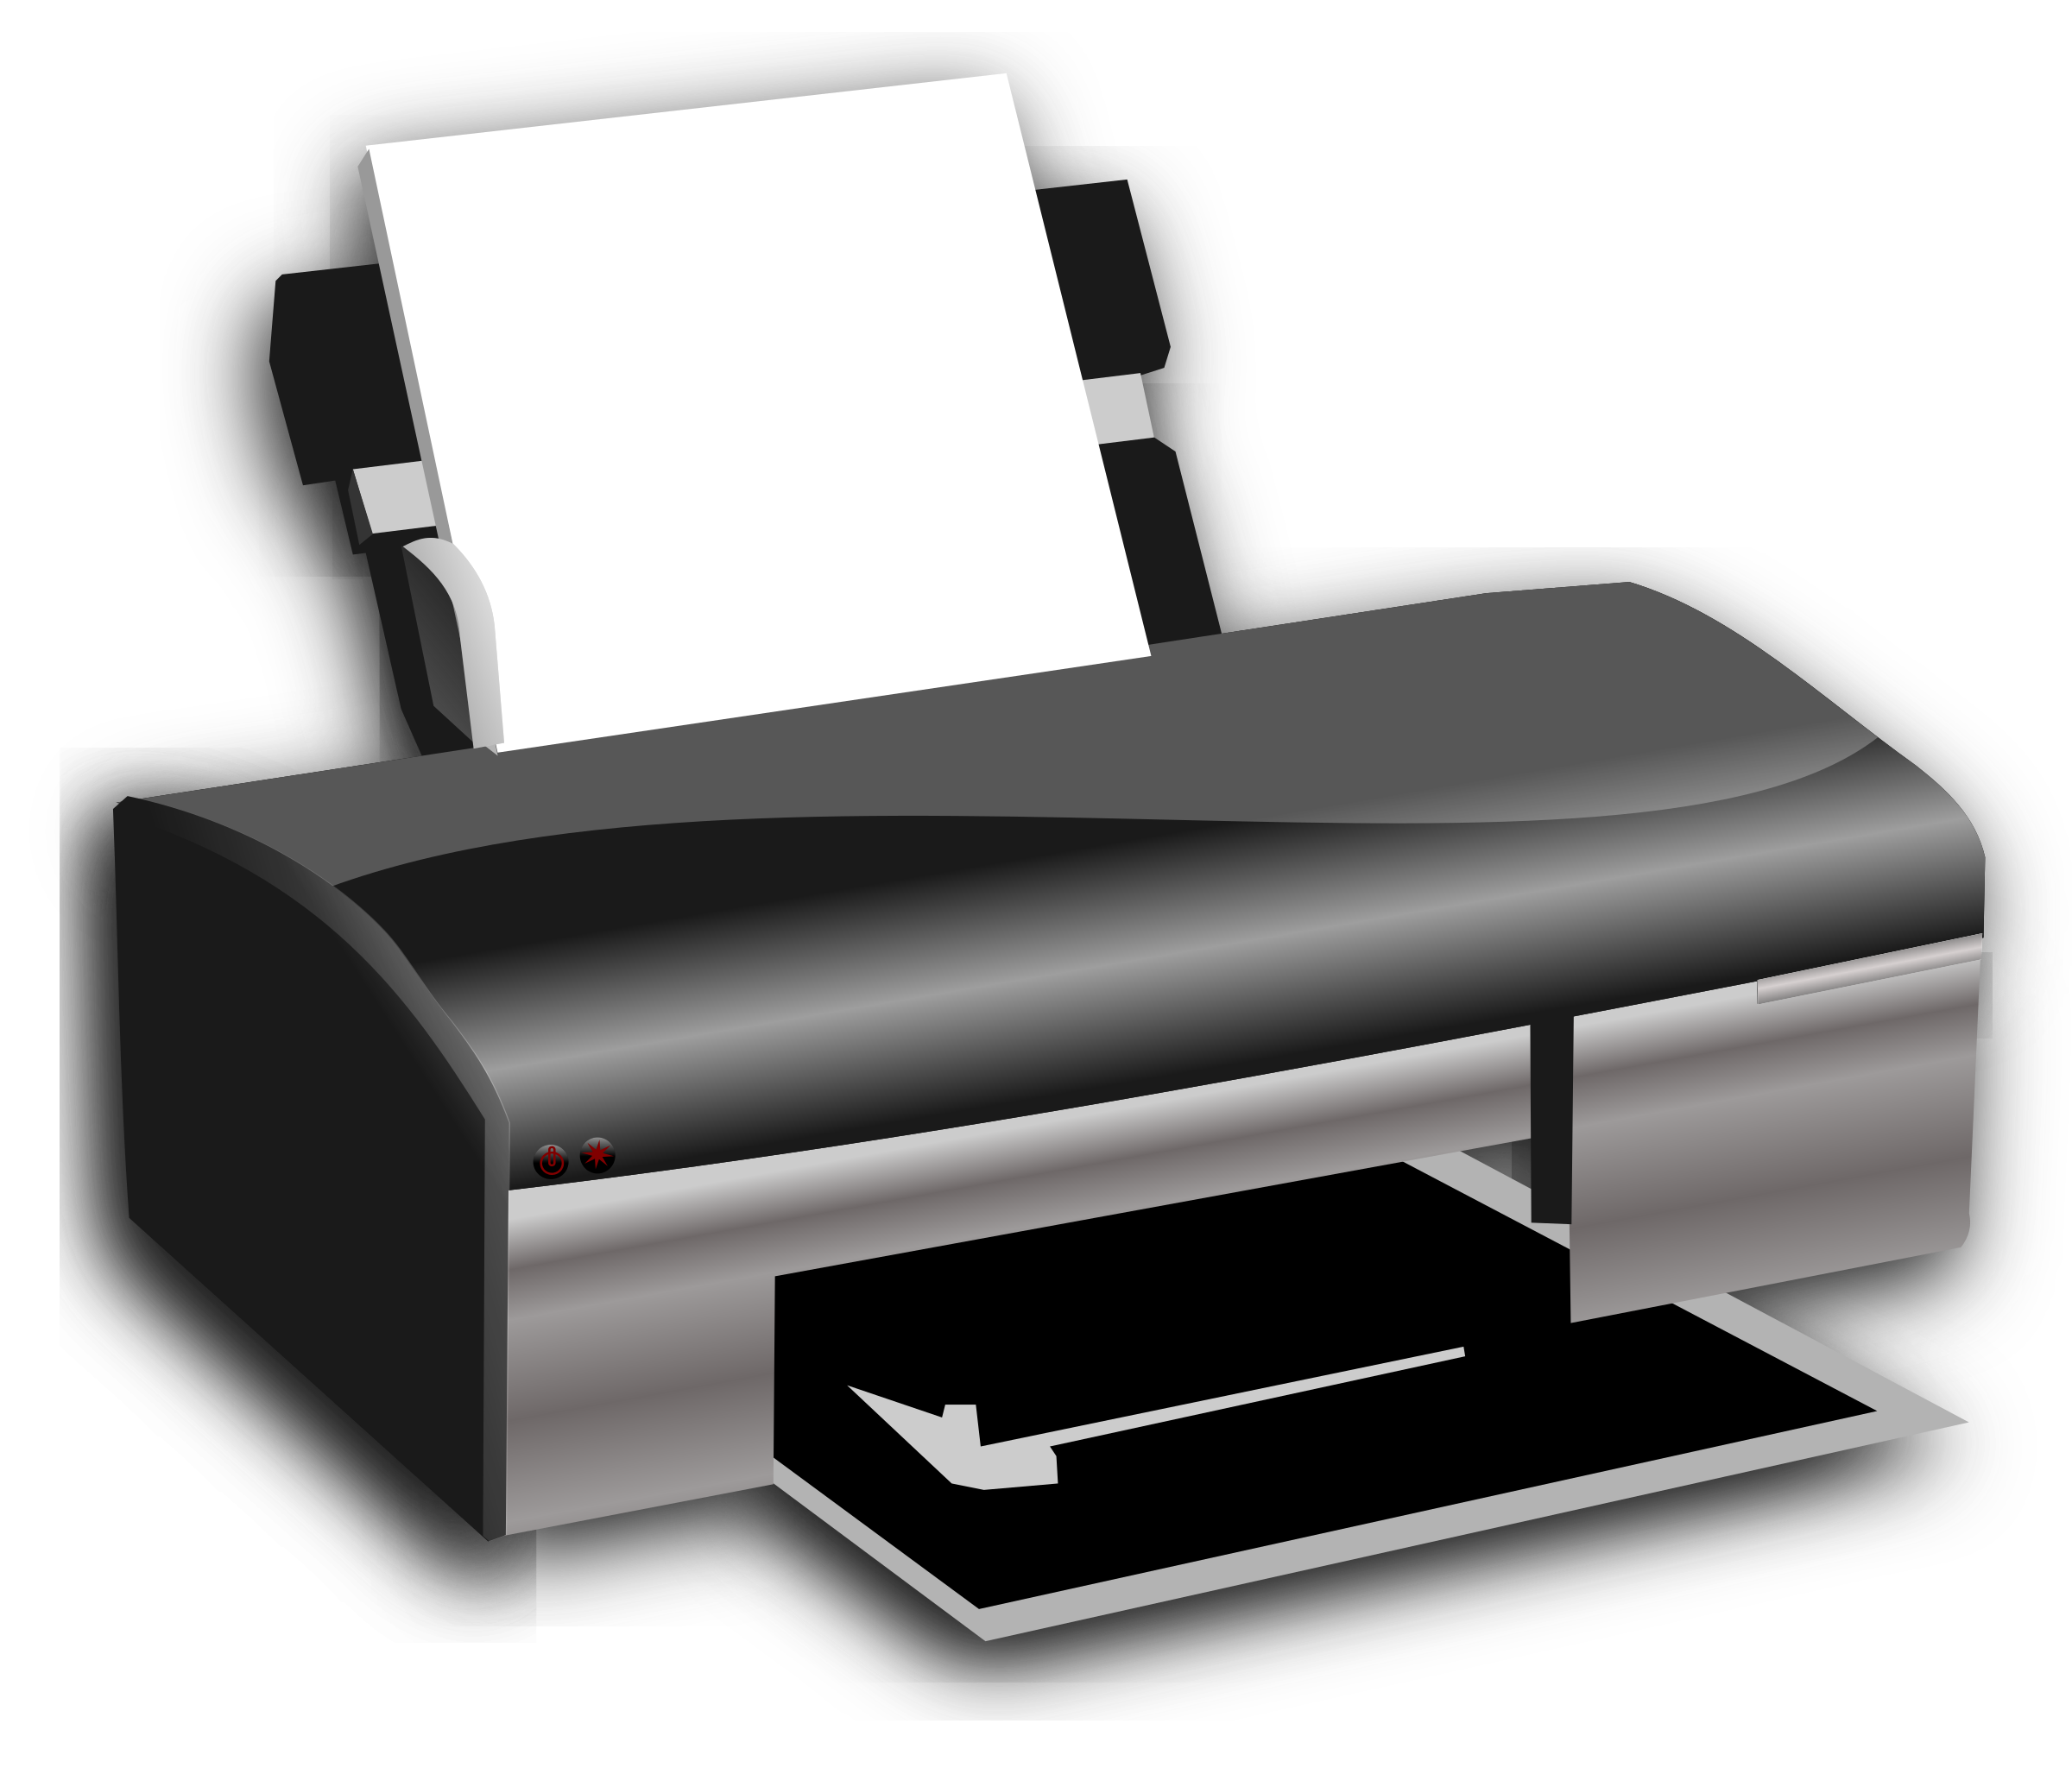 OpenClipArt on Printer by hatalar205